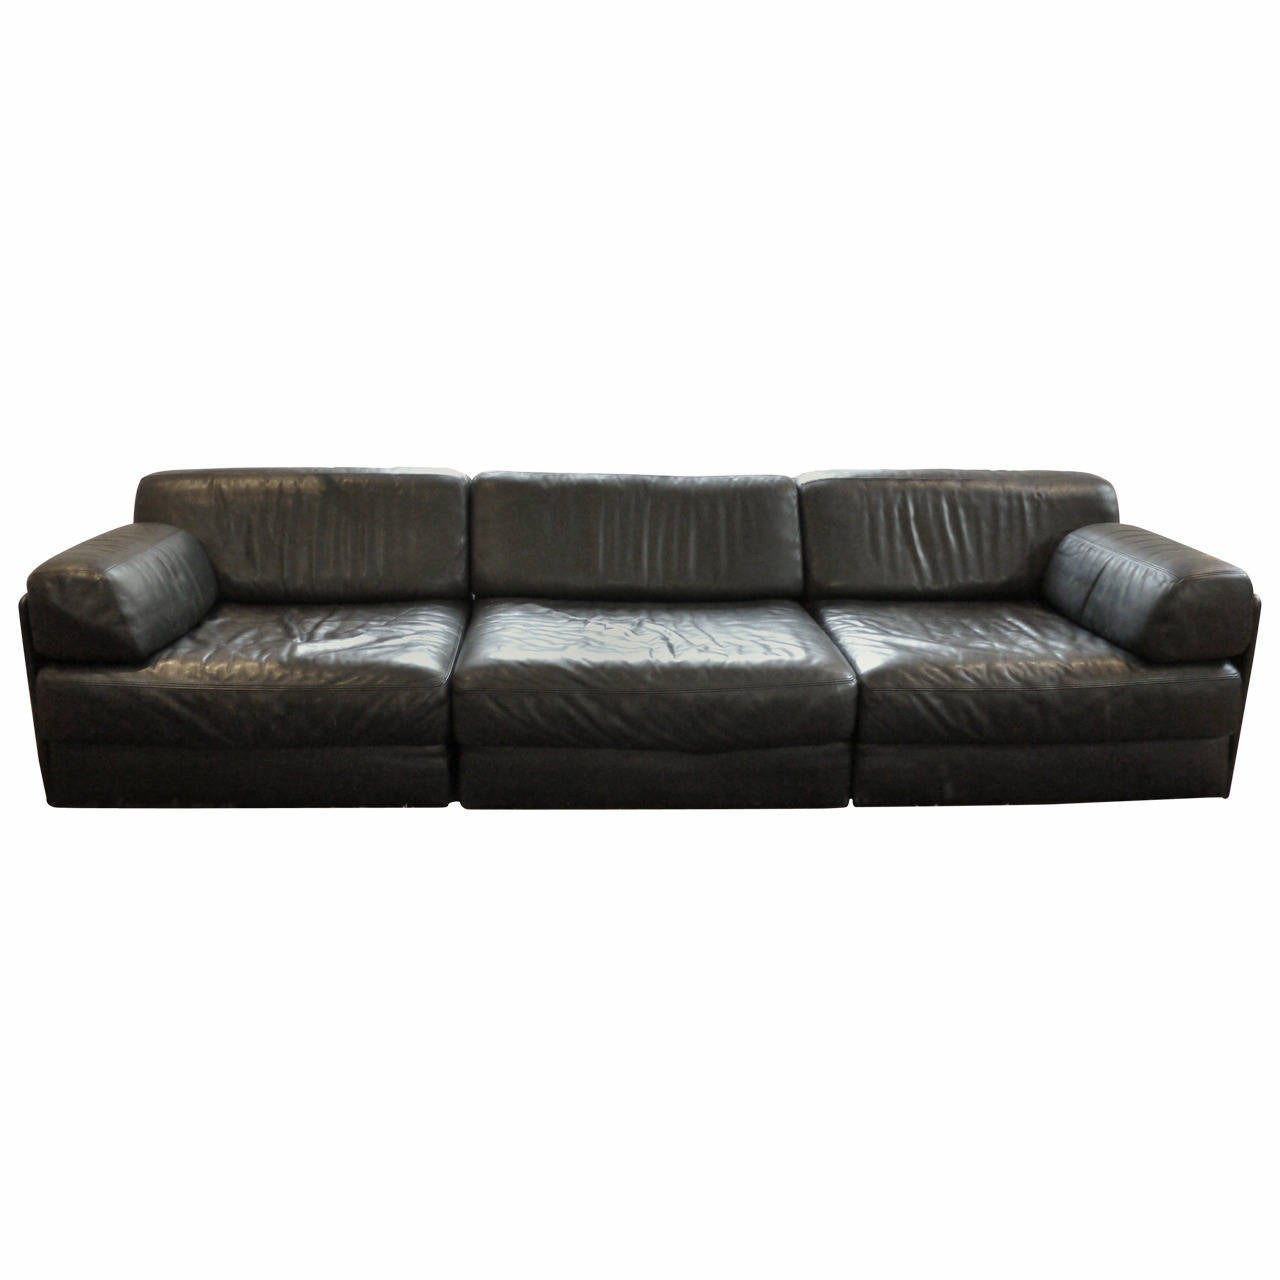 De sede ds76 sofa at 1stdibs for Furniture 99 invisible